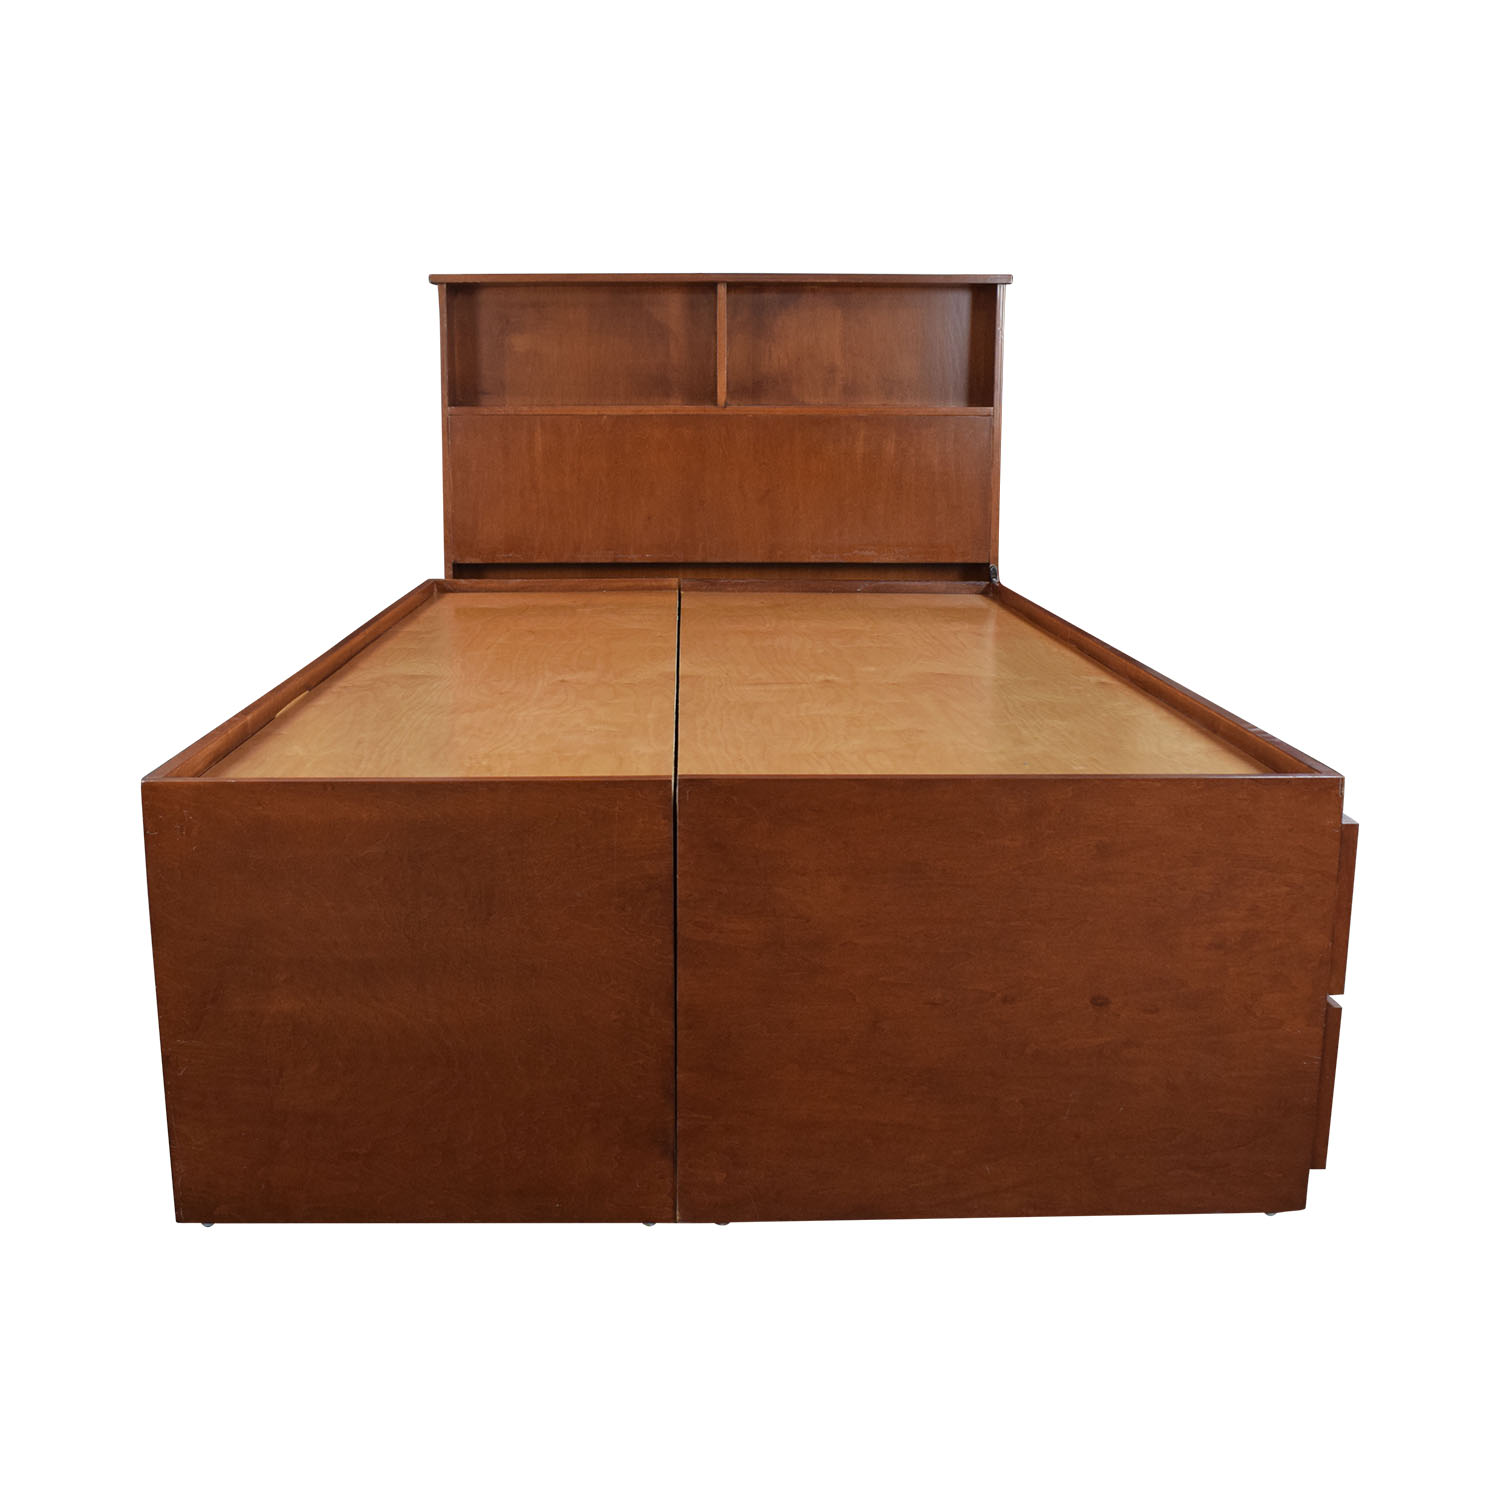 shop Gotham Cabinet Craft Wood Storage Three Quarter Bed Frame Gotham Cabinet Craft Bed Frames